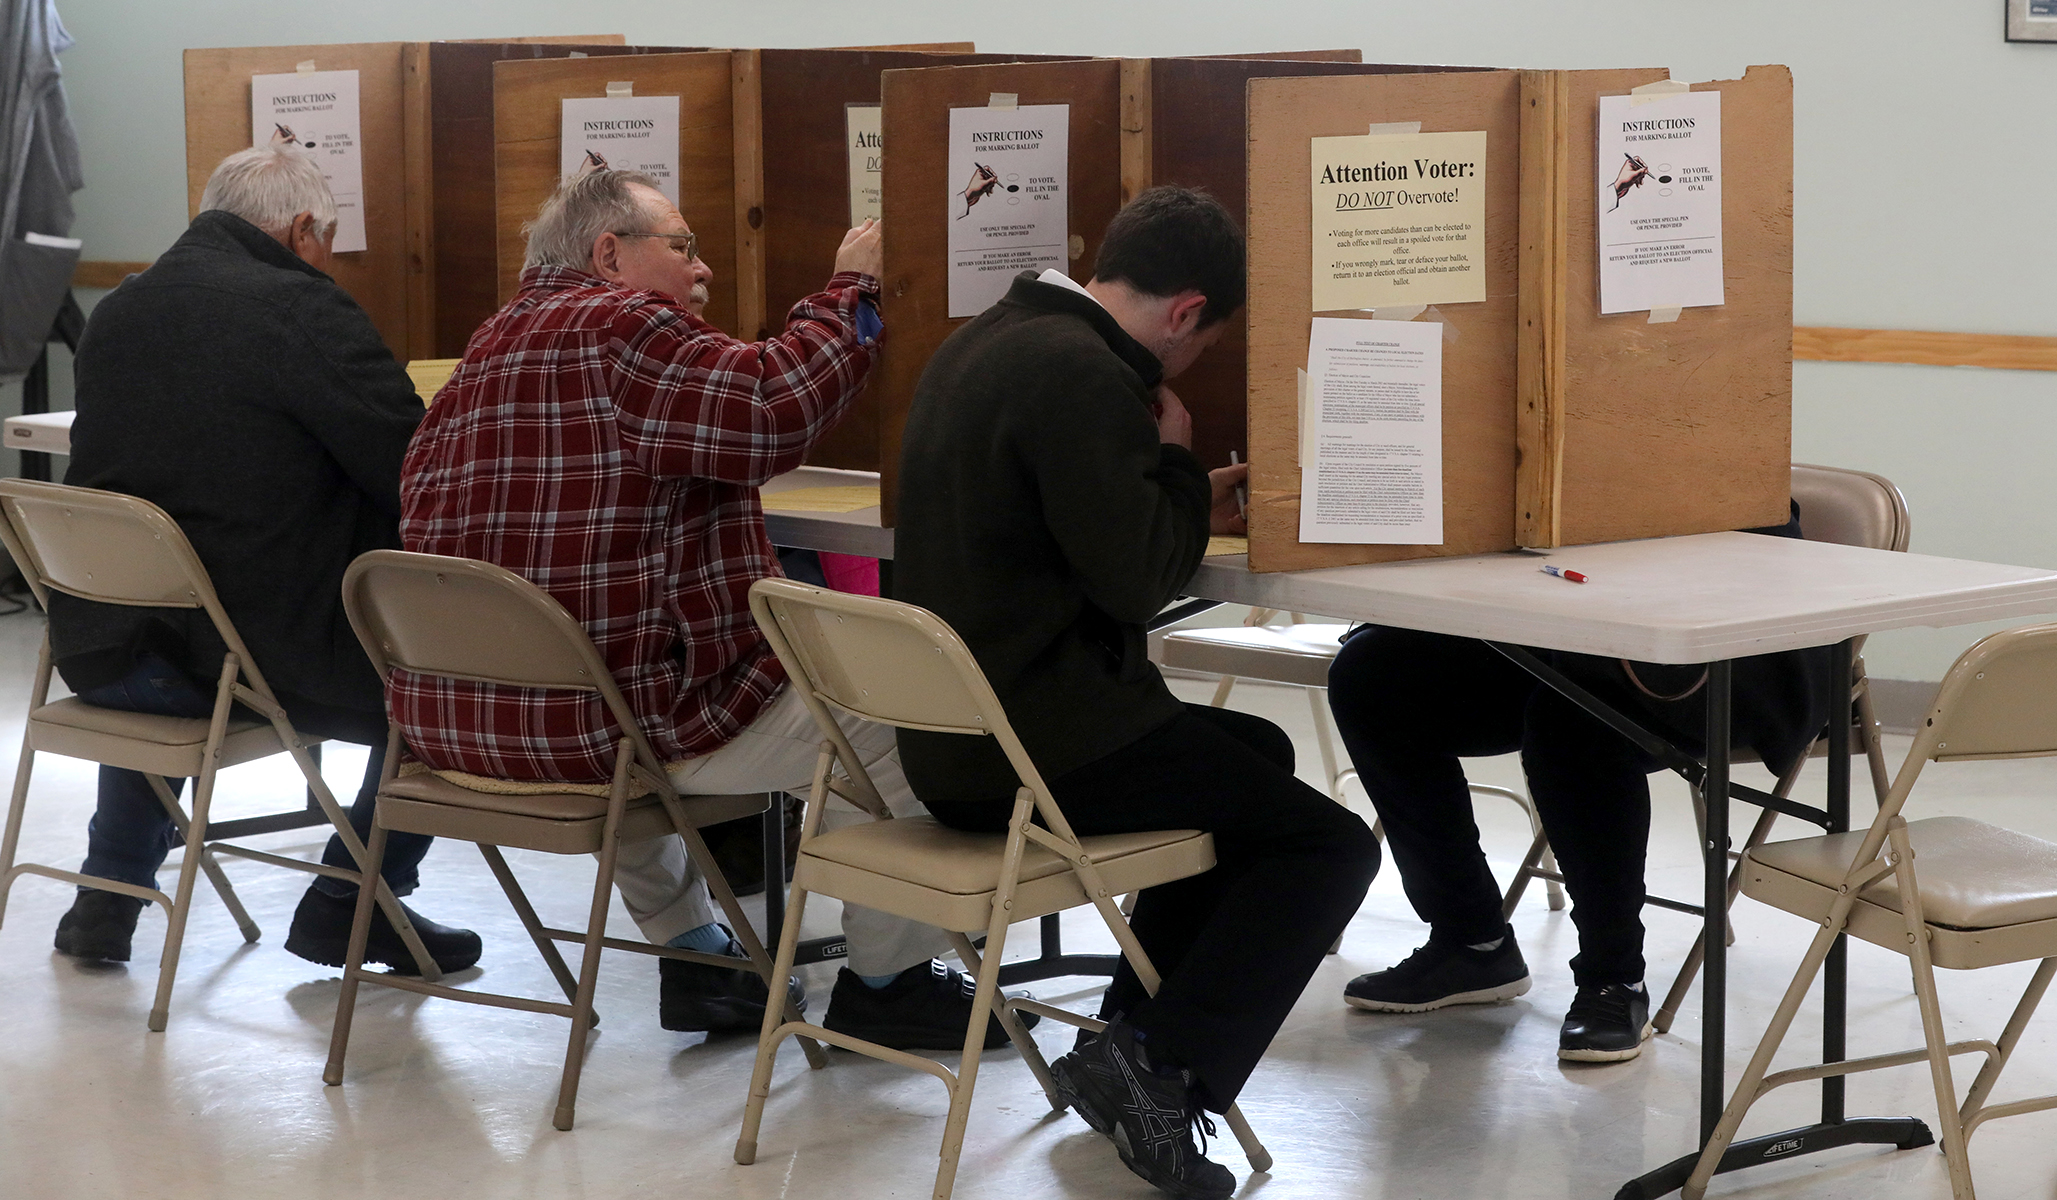 Municipal Elections: RNC Sues Vermont Cities That Allow Noncitizens to Vote